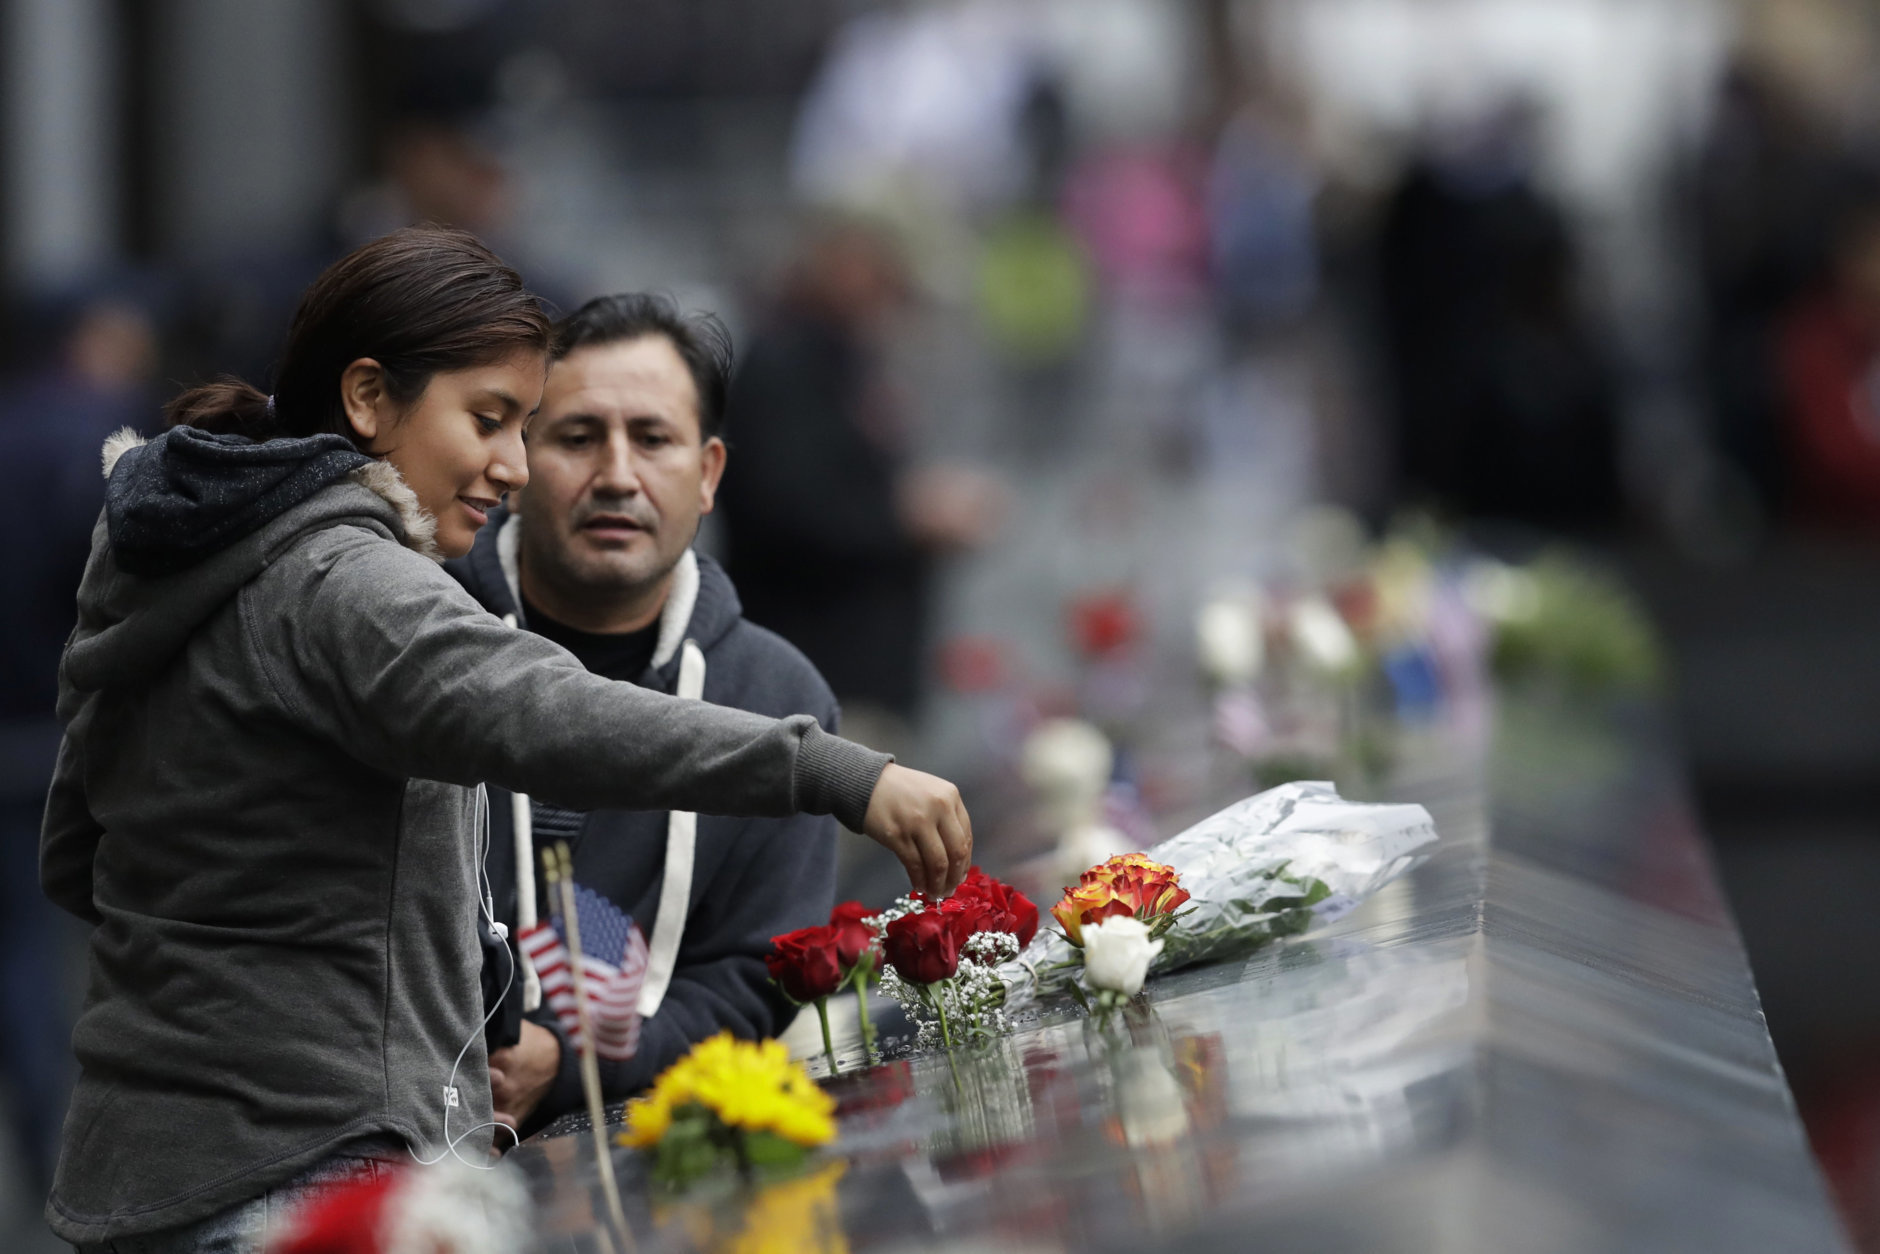 A woman drips water on a bouquet of flowers at the North Pool during a ceremony marking the 17th anniversary of the terrorist attacks on the United States on Tuesday, Sept. 11, 2018, in New York. (AP Photo/Mark Lennihan)